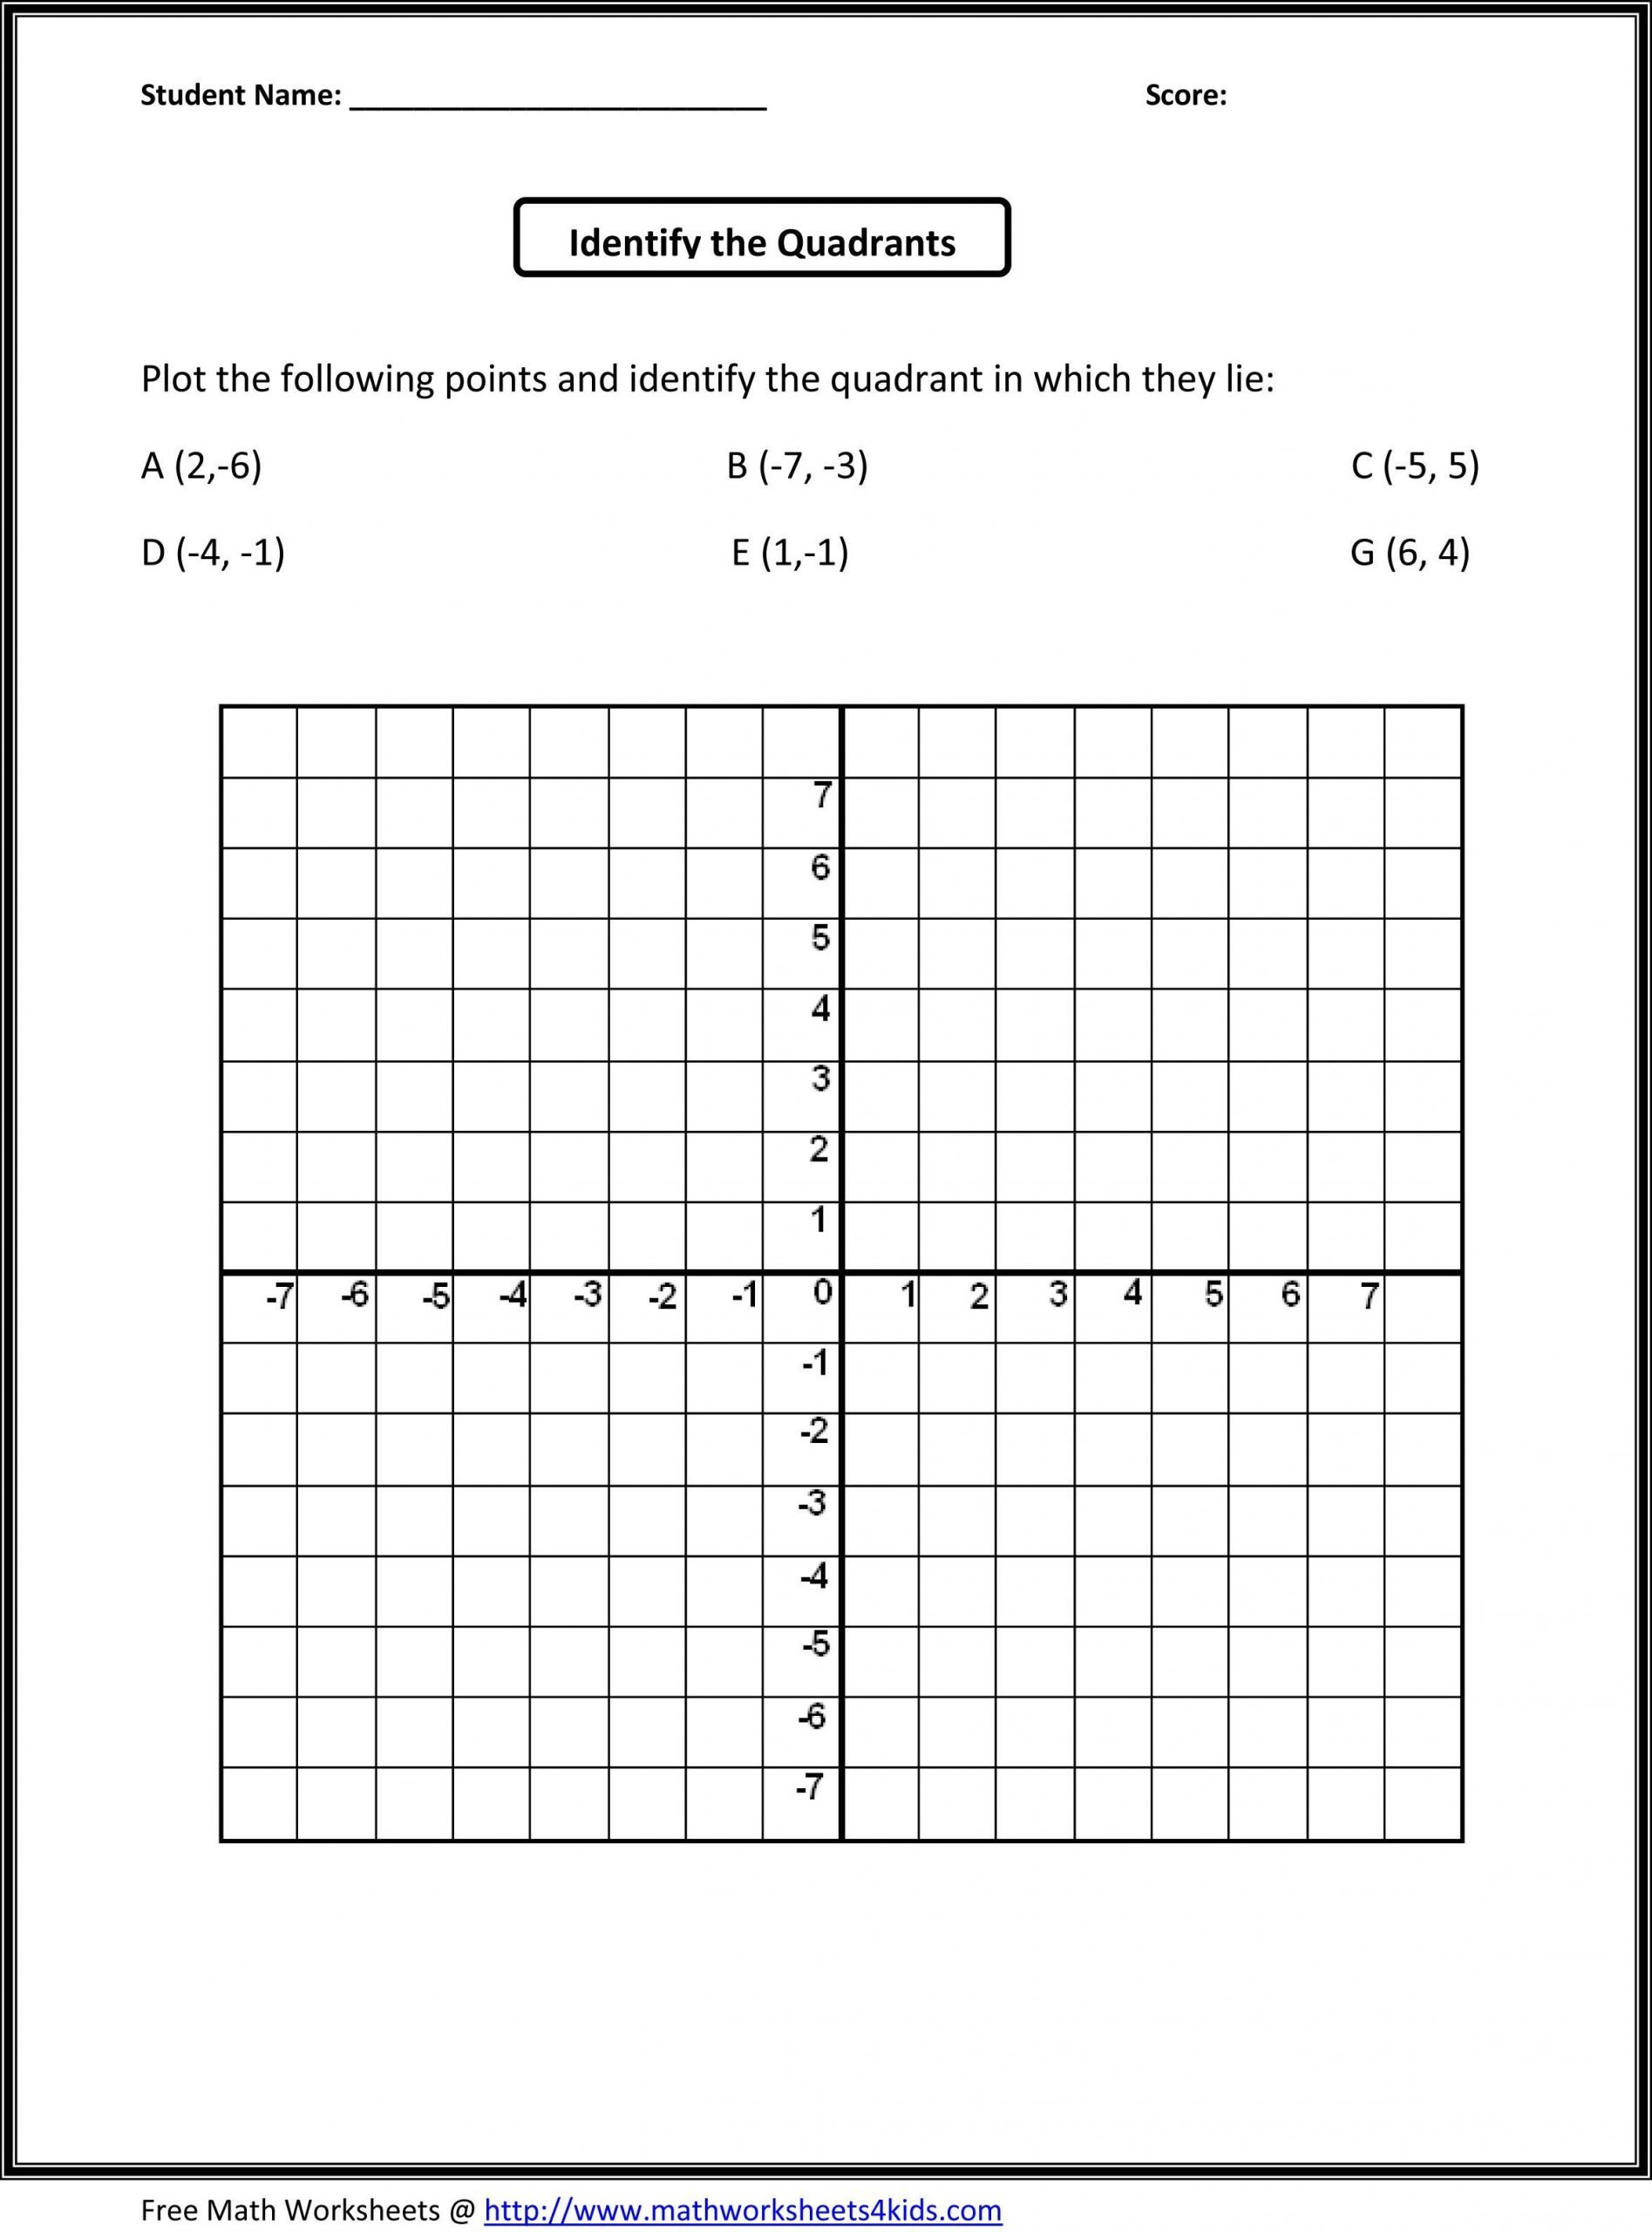 Probability Worksheet 5th Grade 5th Grade Math Worksheets 5th Grade Math Worksheets